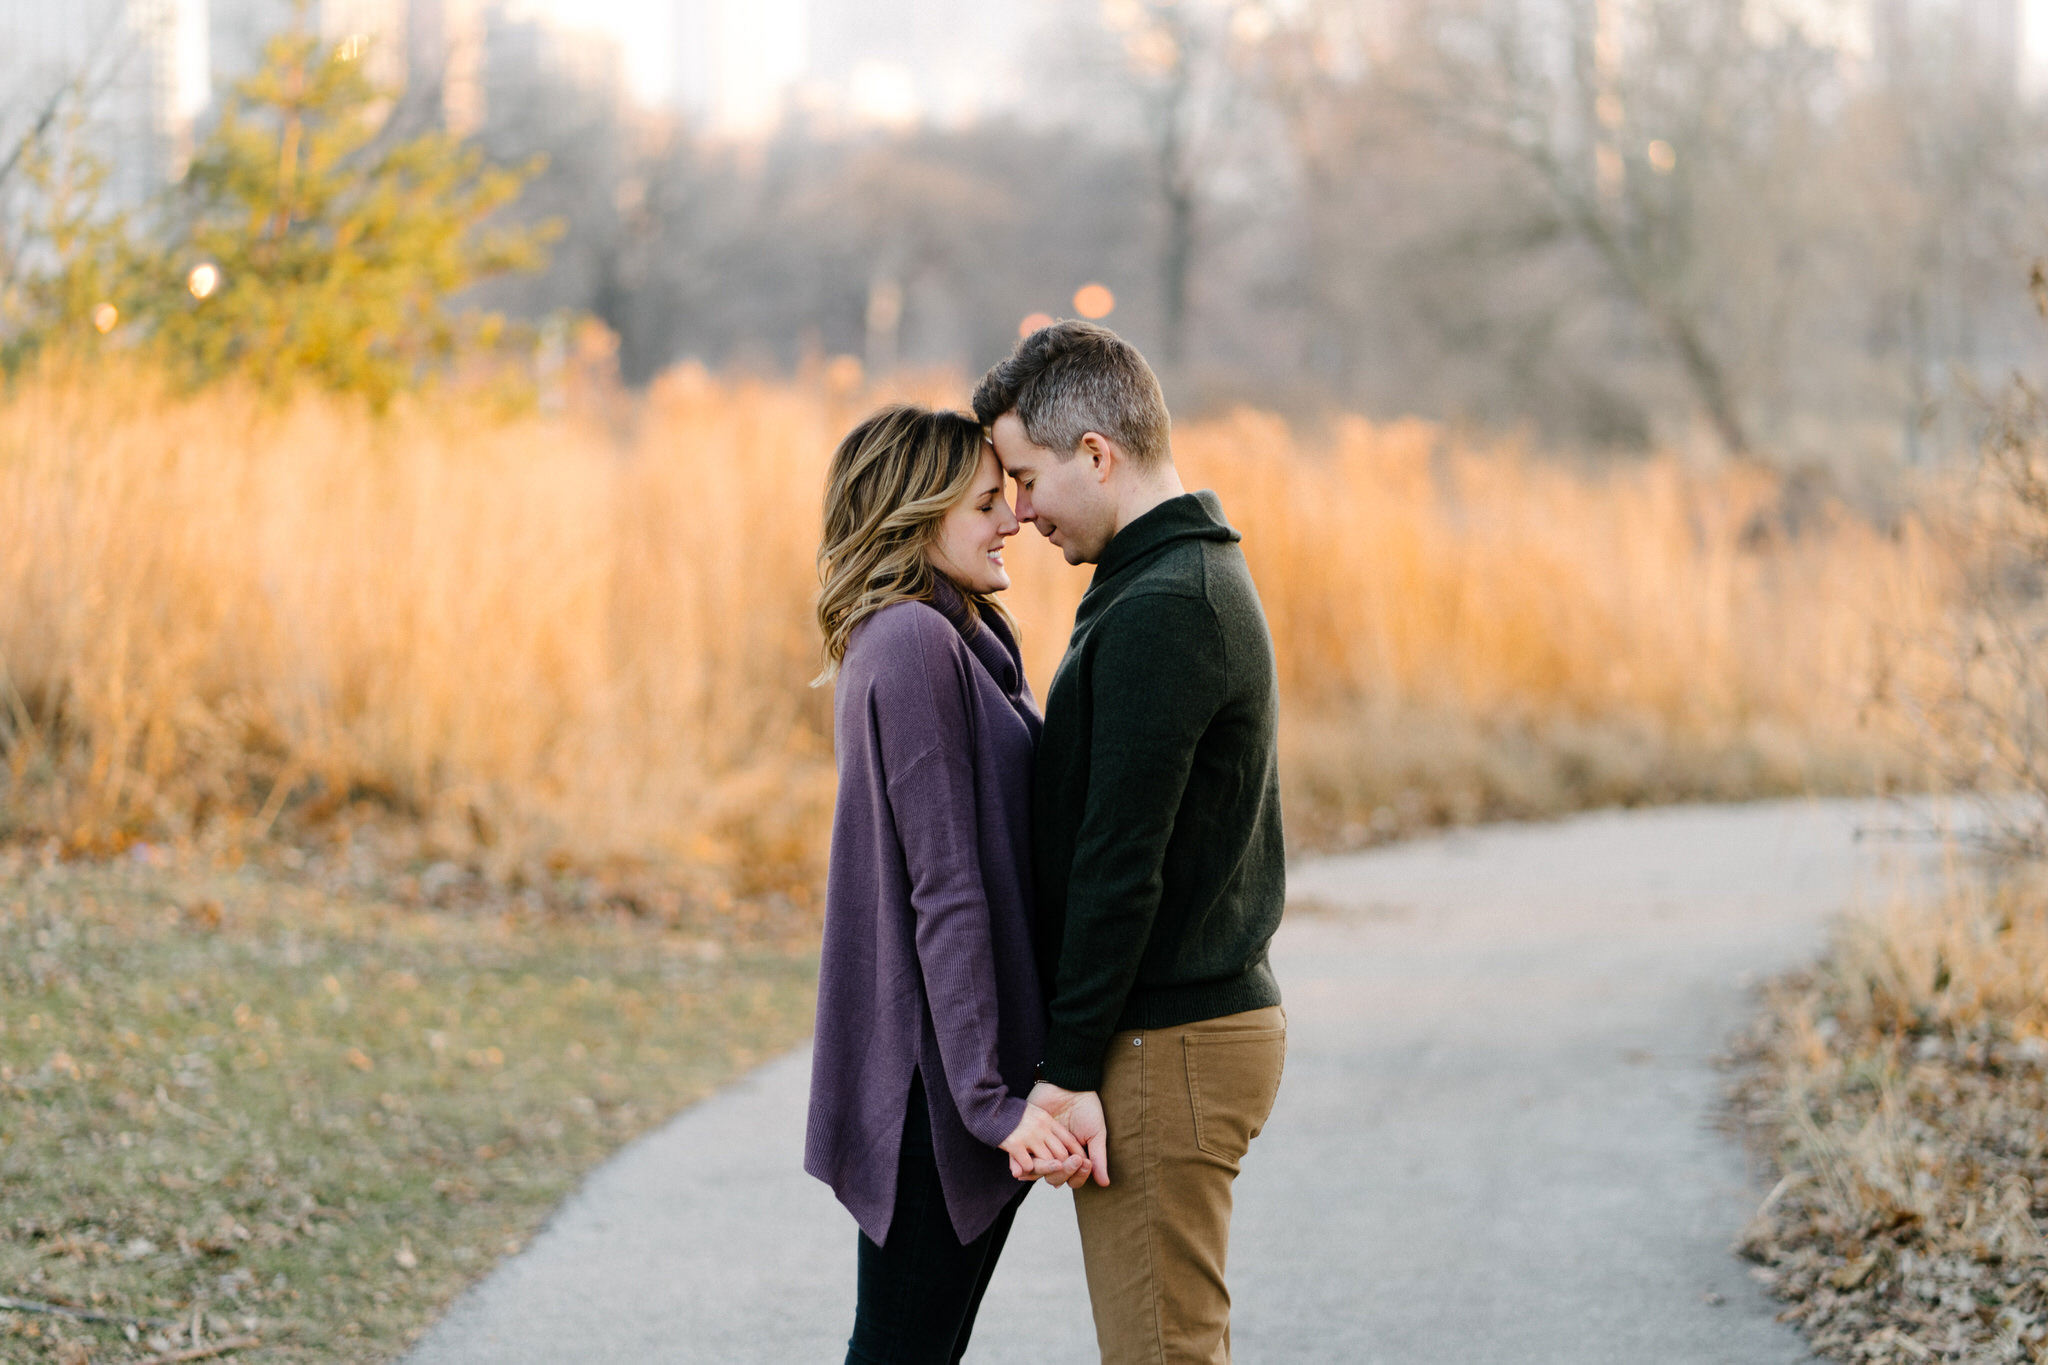 019-rempel-photography-chicago-wedding-photography-christina-paul-lincoln-park-engagement-session-second-city-bar.jpg